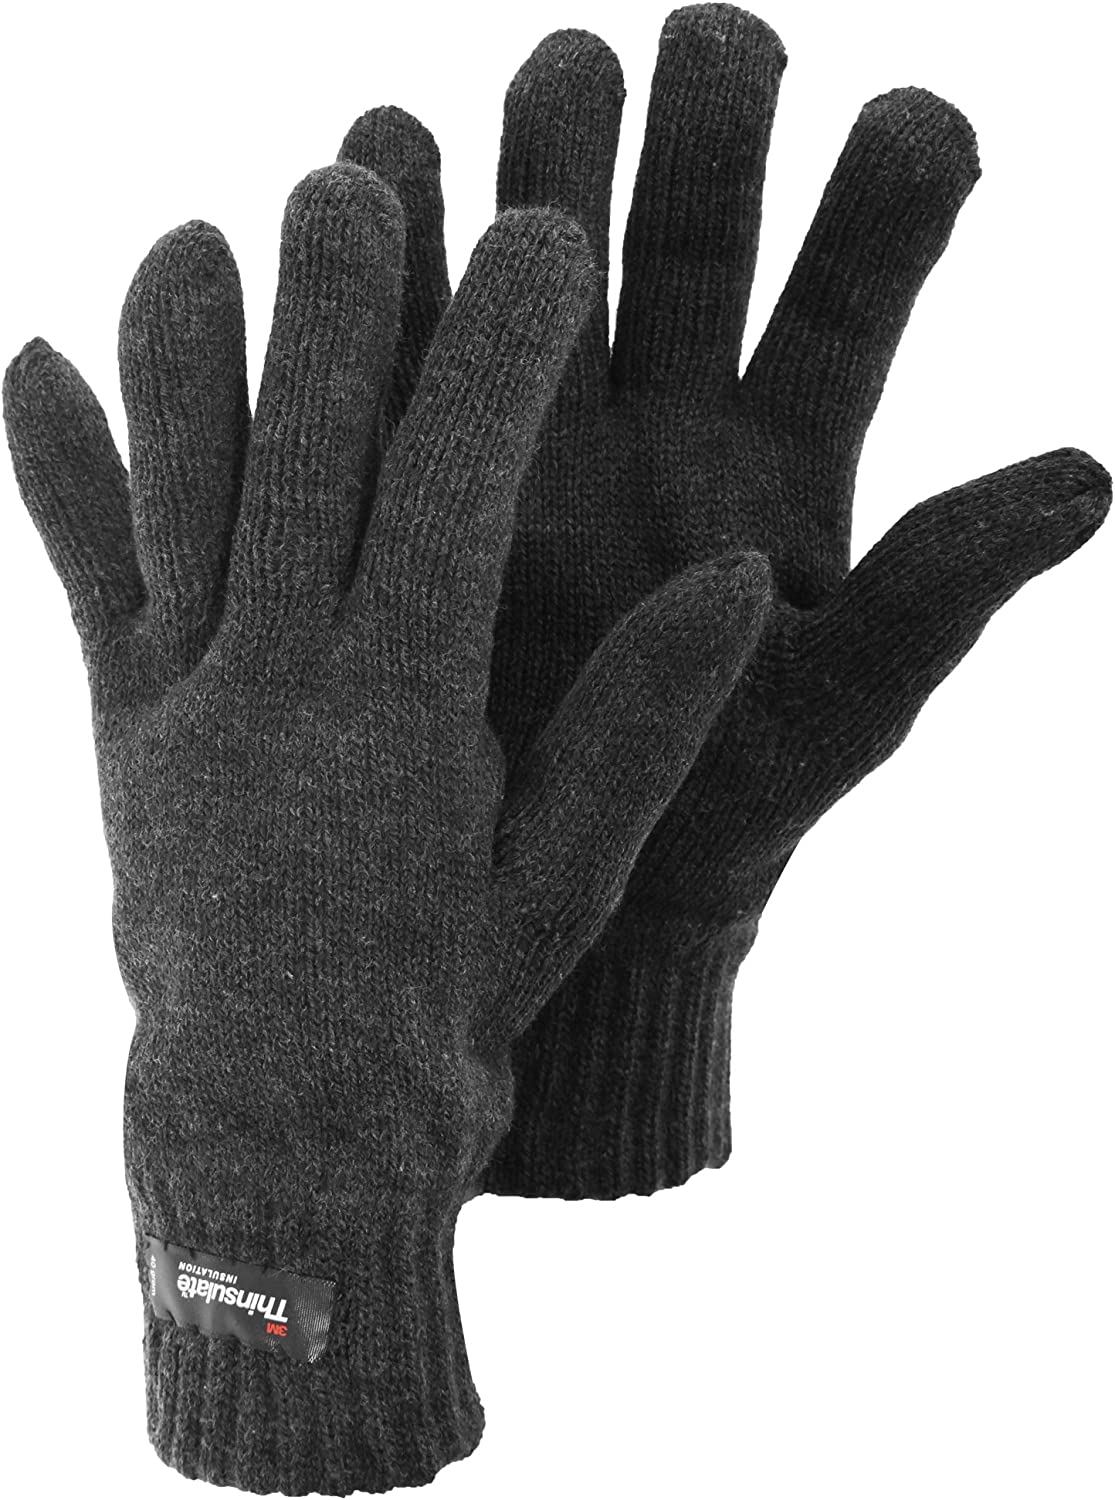 Mens Heatguard Thermal Knitted Winter Gloves